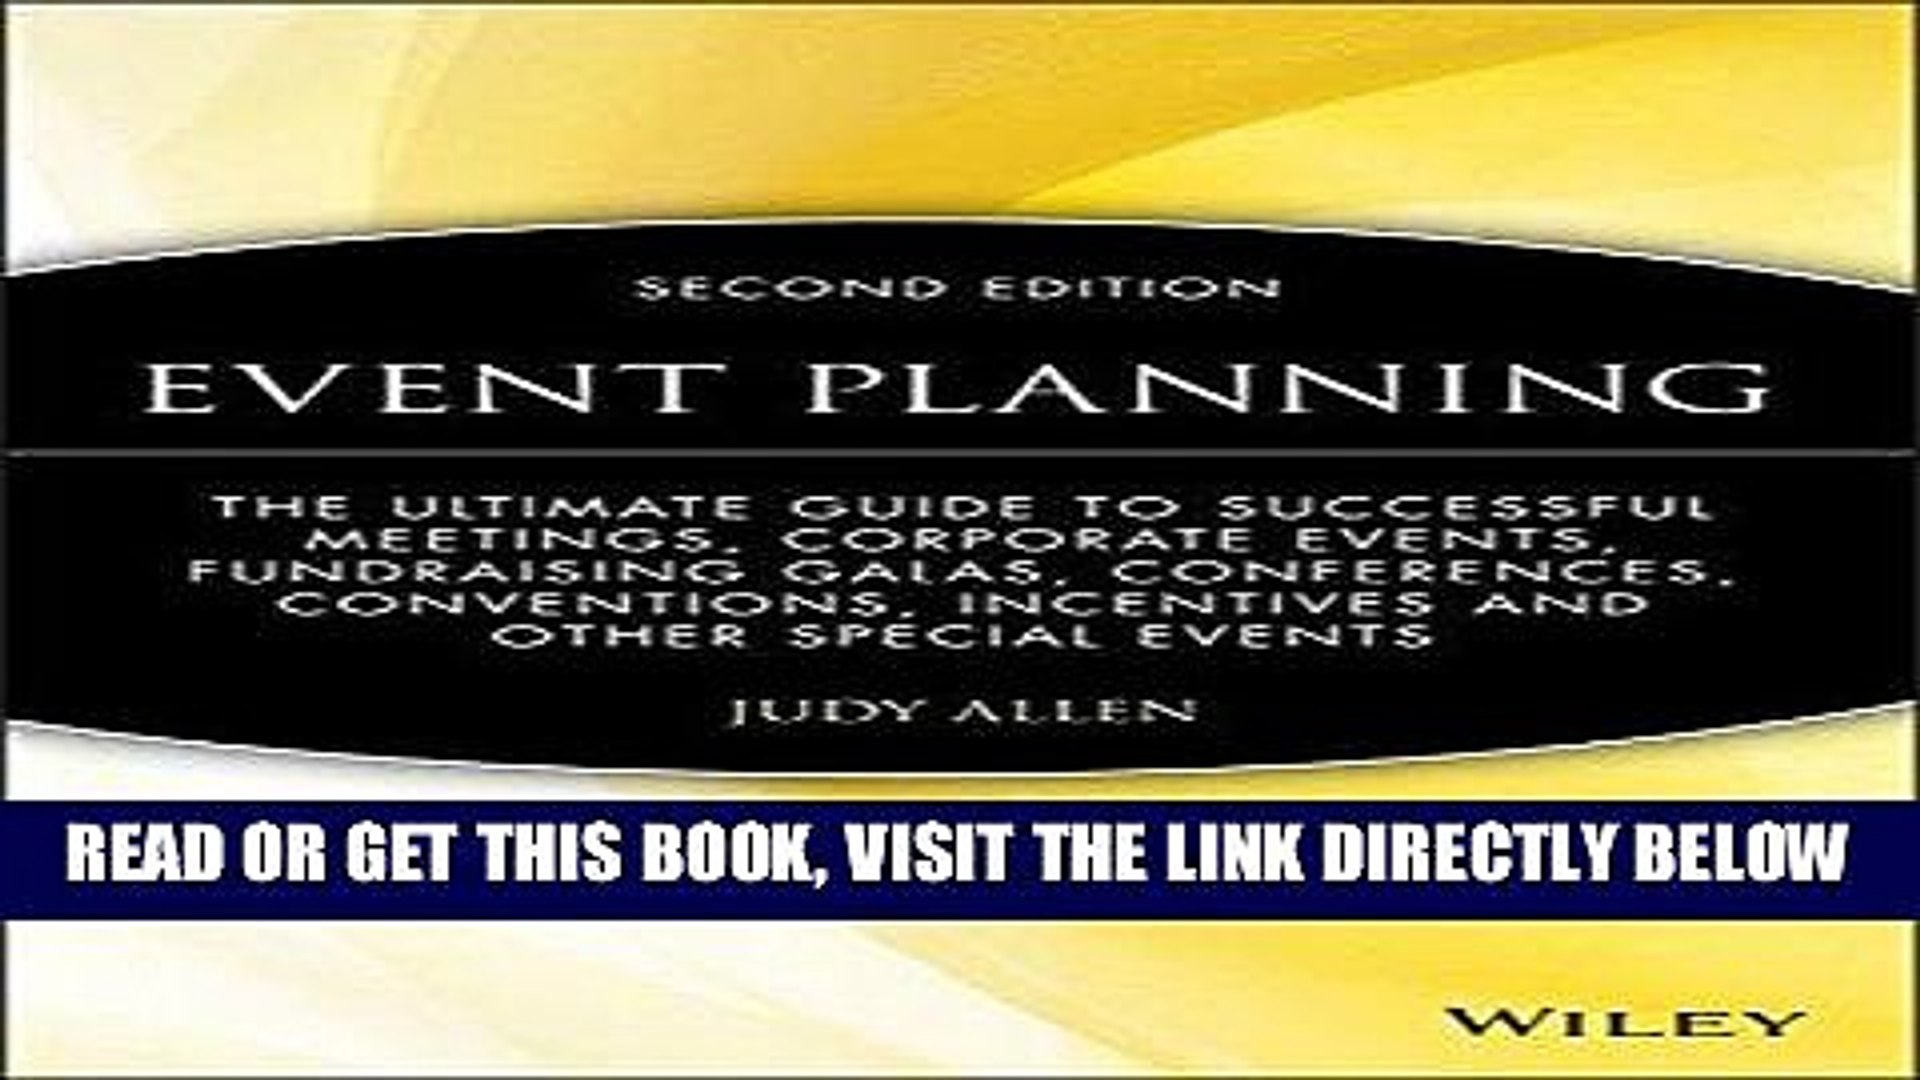 [READ] EBOOK Event Planning: The Ultimate Guide To Successful Meetings, Corporate Events,